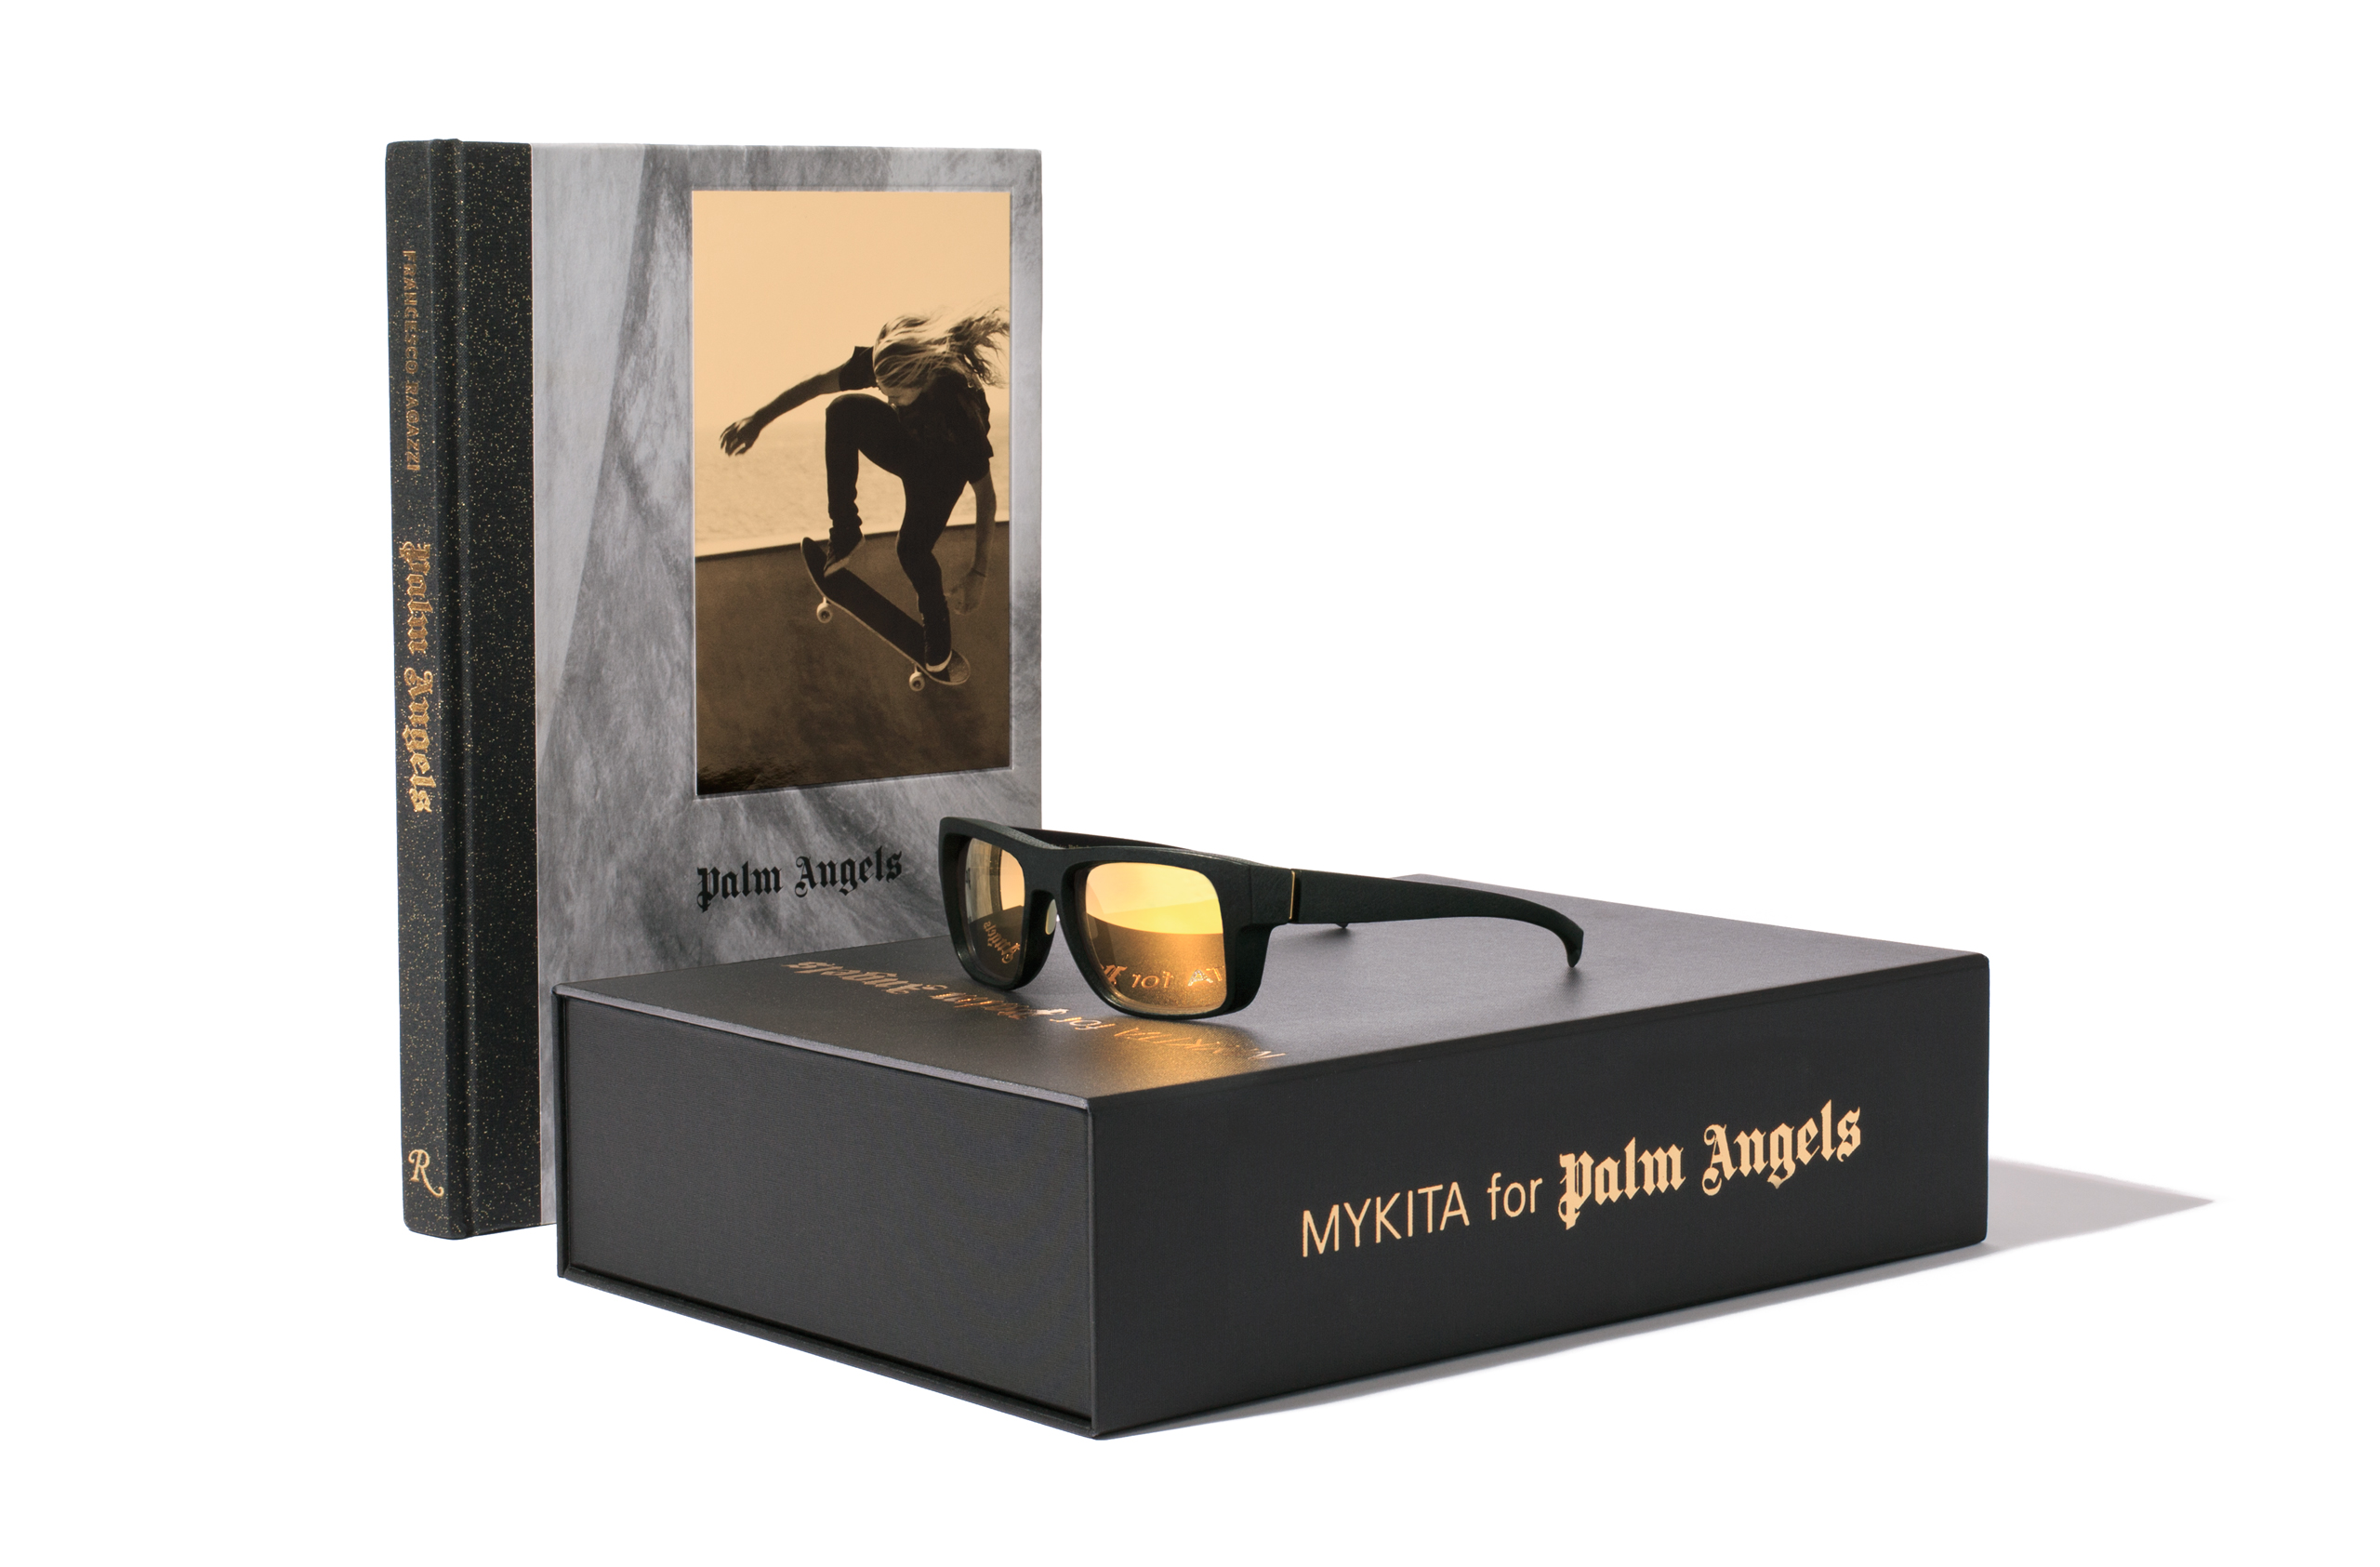 MYKITA For Palm Angels